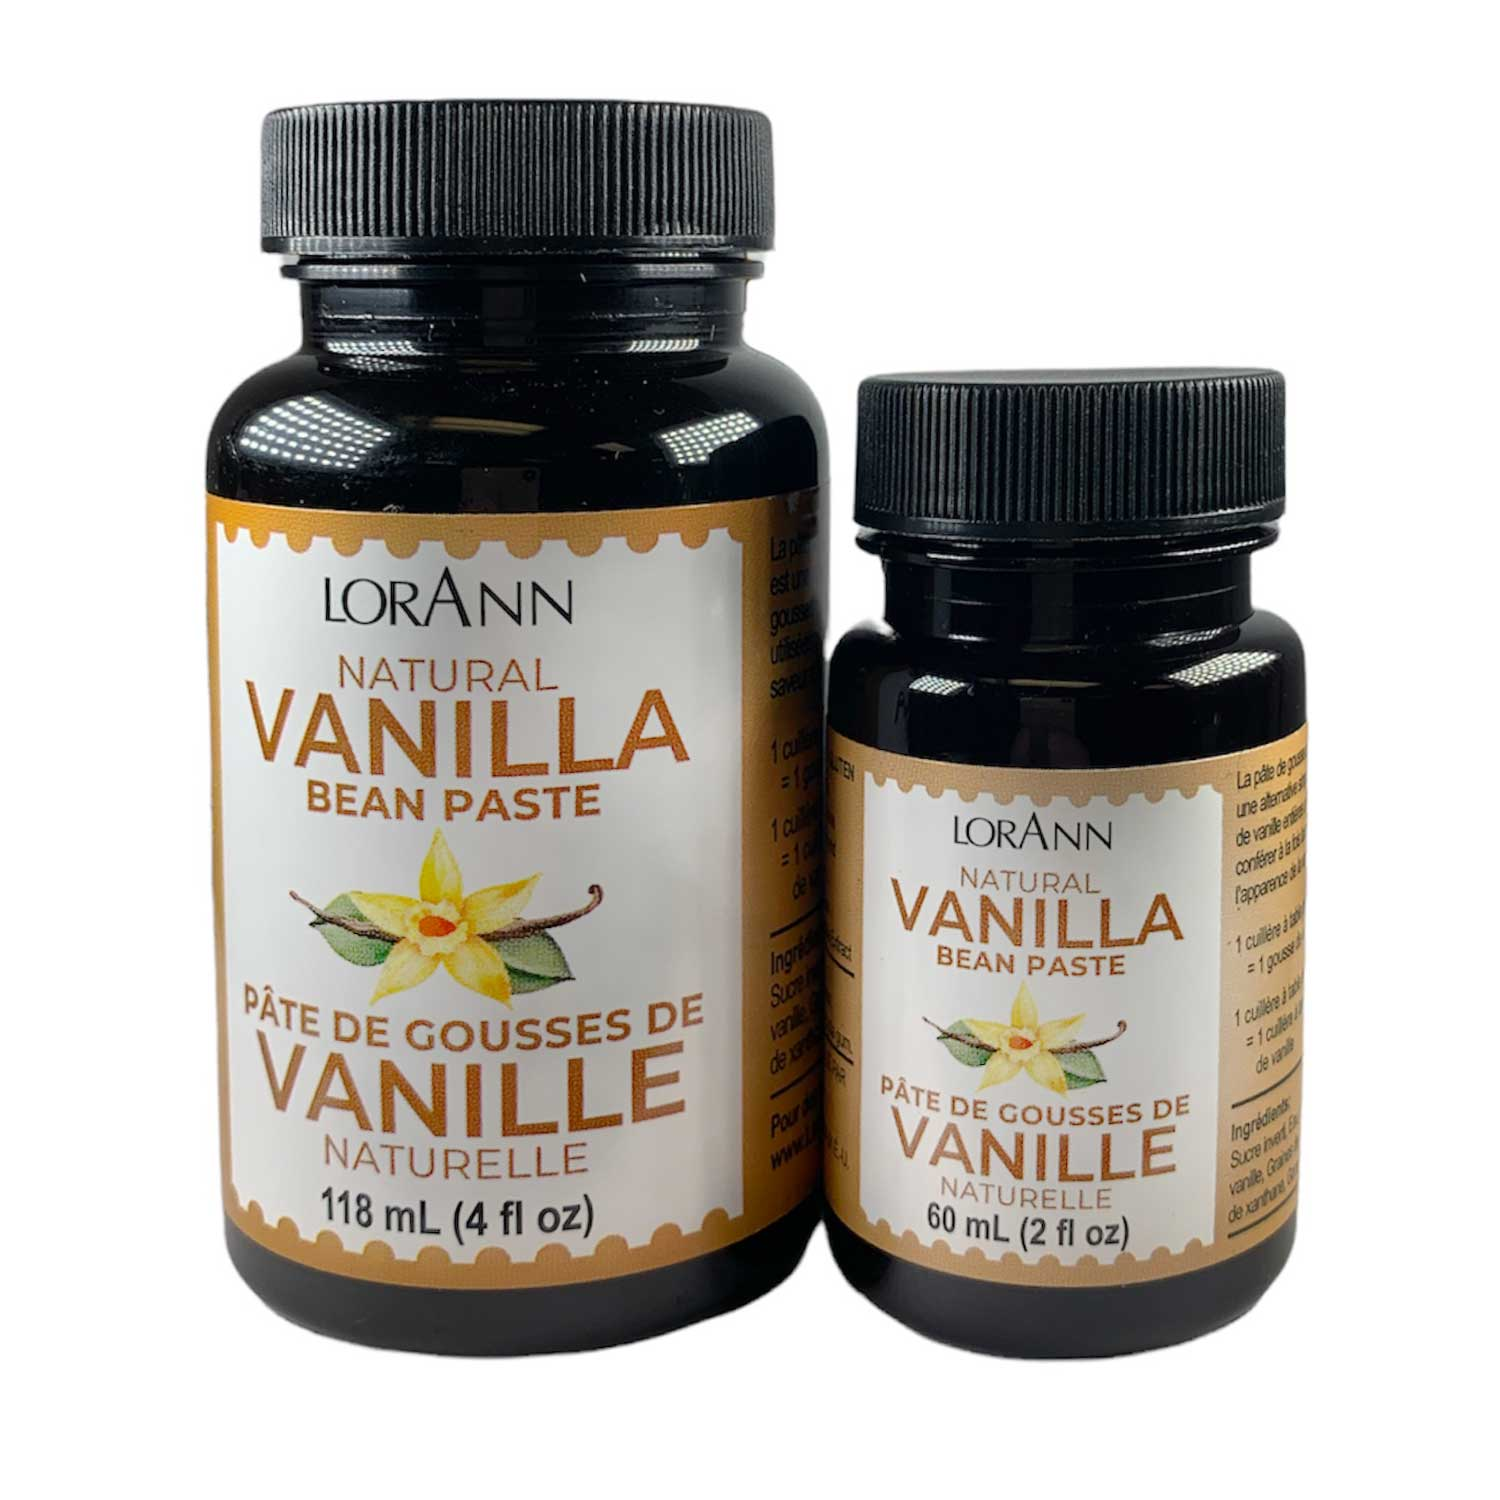 Natural Vanilla Bean Paste